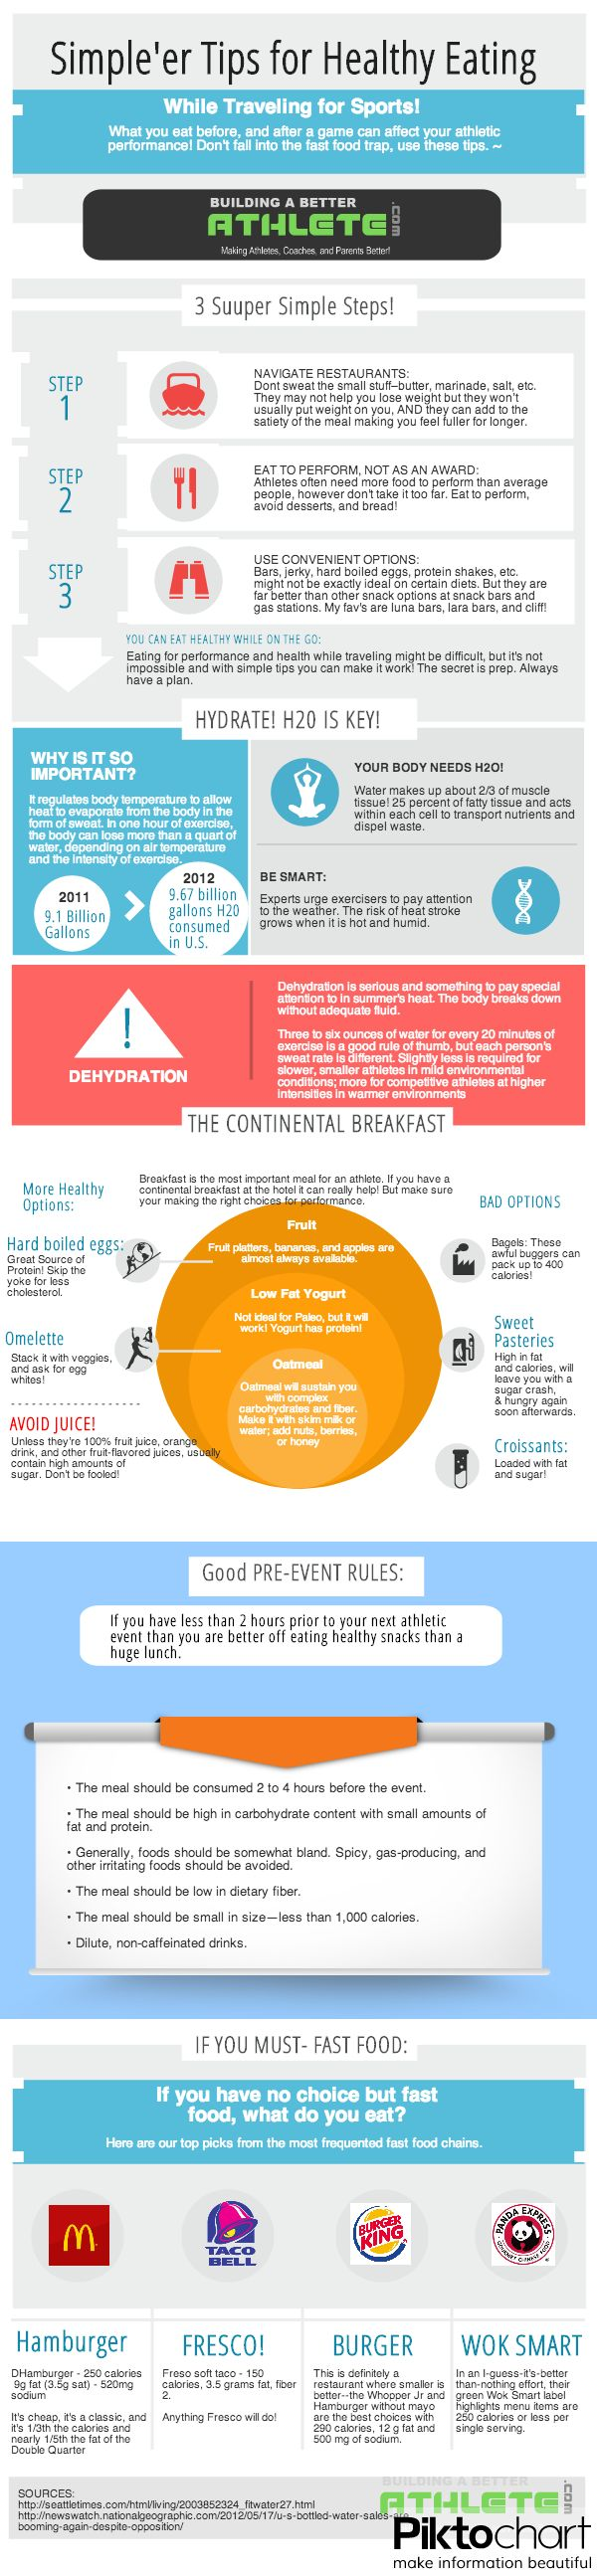 Sports Nutrition Tips for Traveling - Infographic Guide #fieldhockey #hocsocx